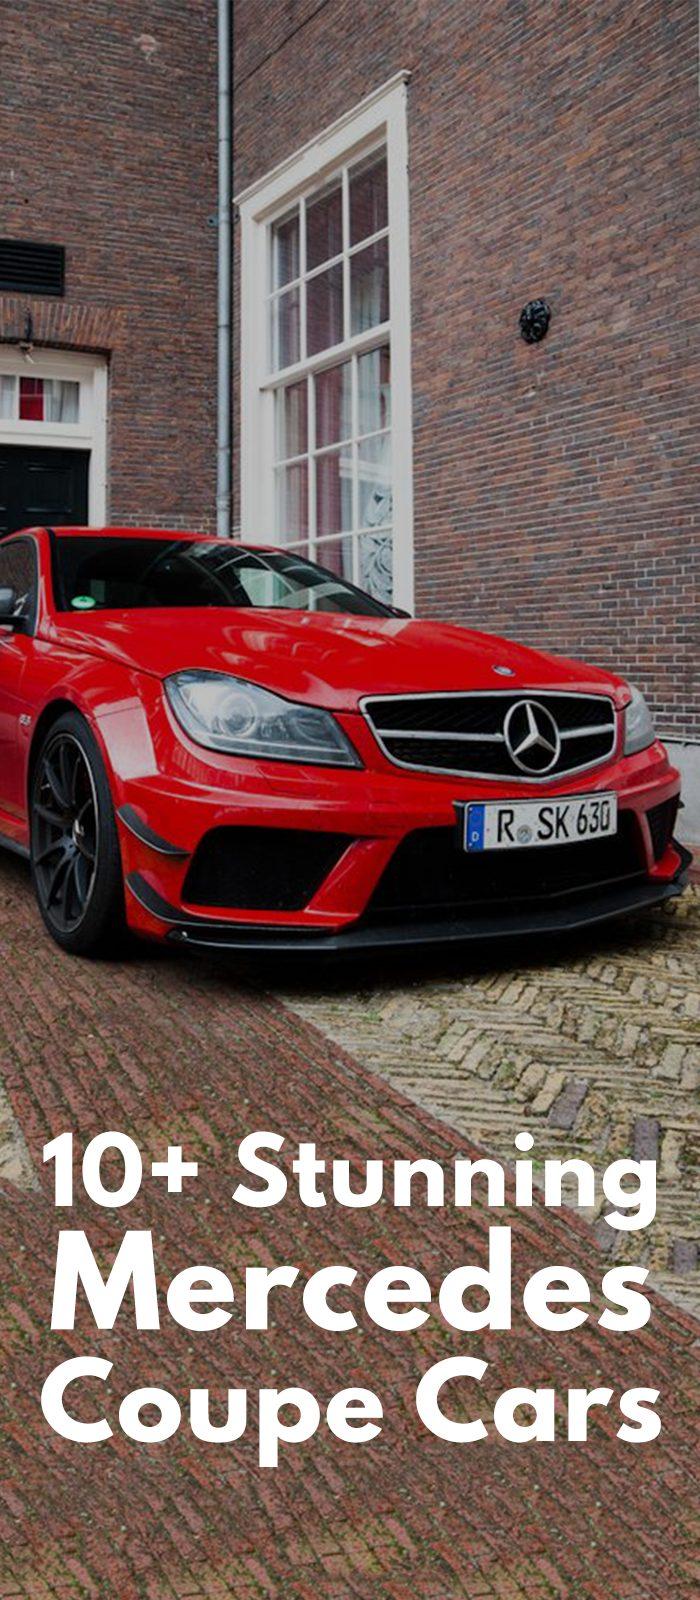 10+ Stunning Mercedes Coupe Cars